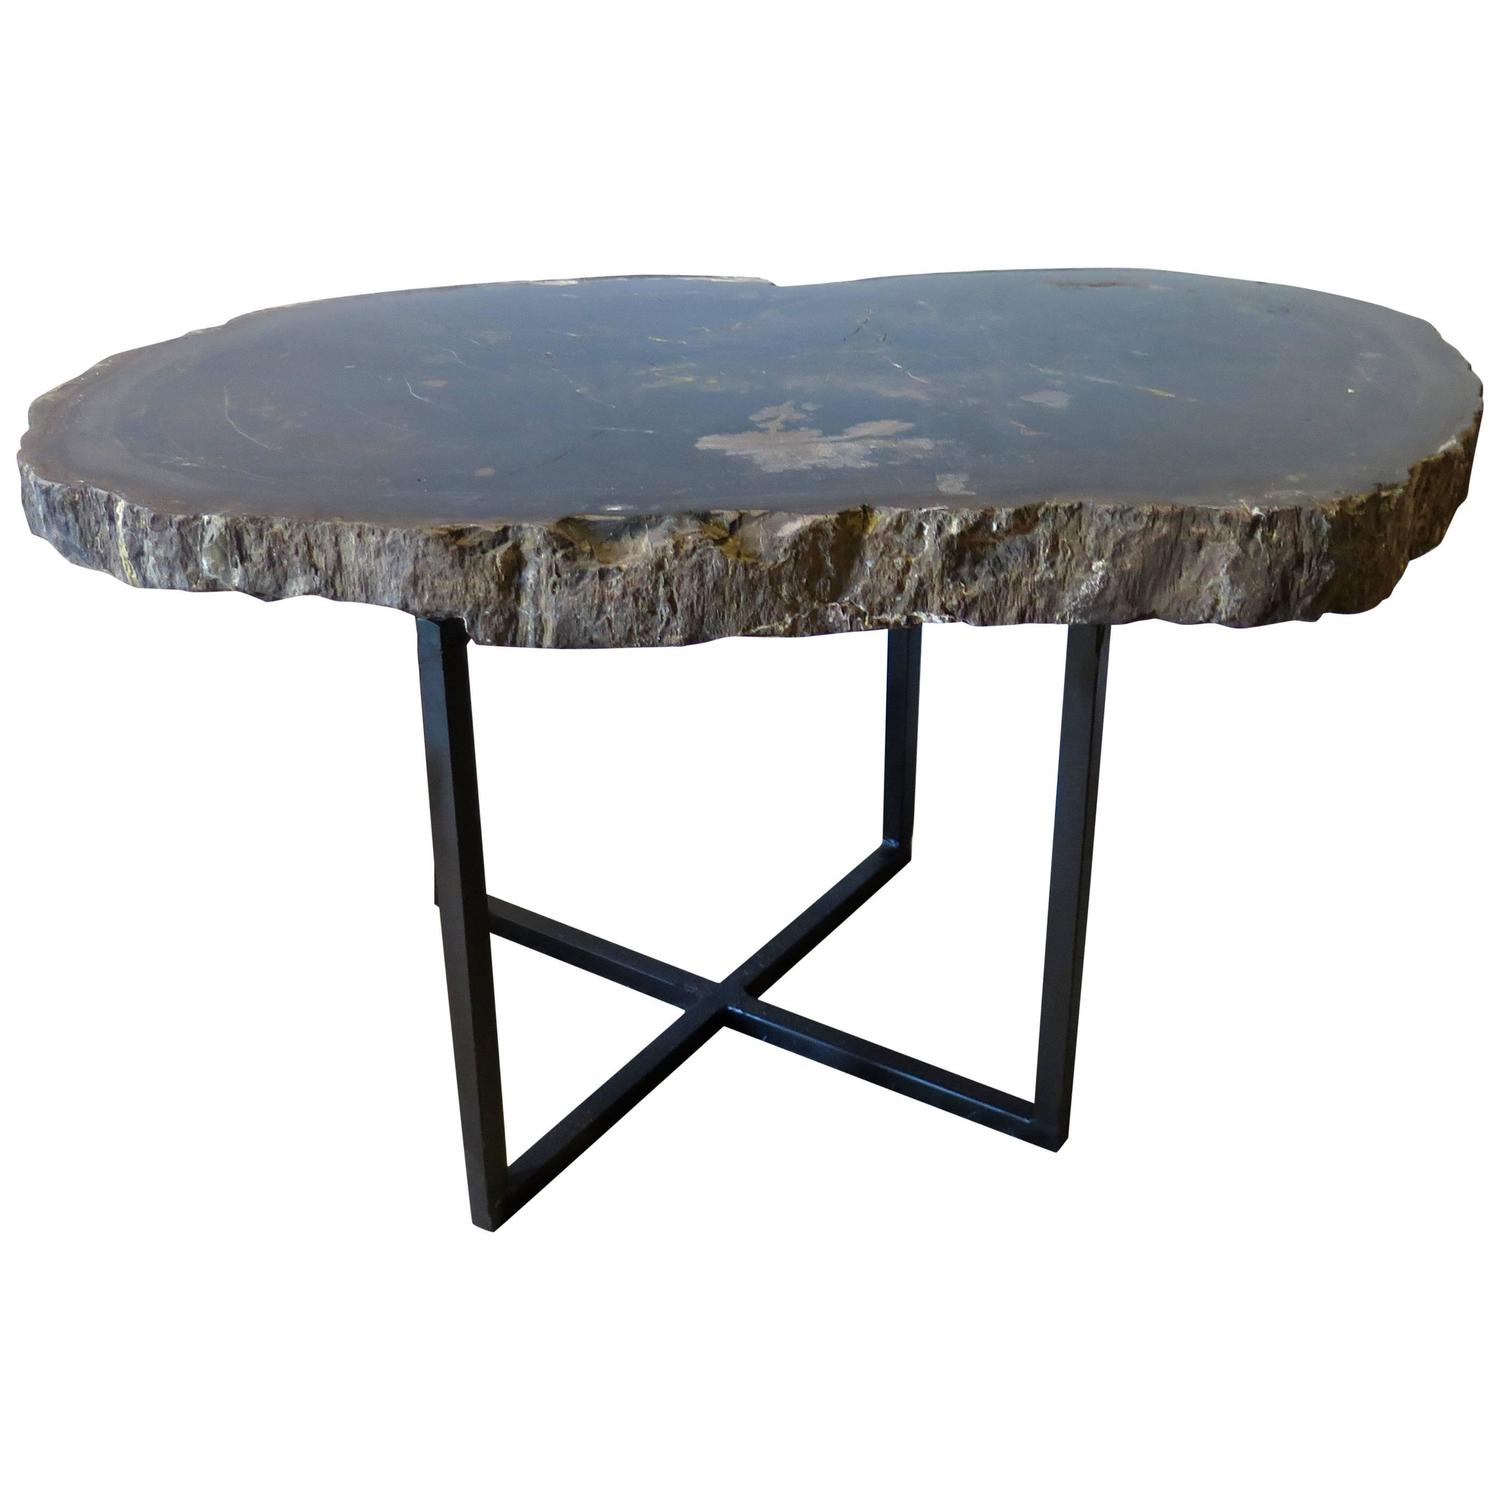 Black and gray petrified wood coffee or side table for